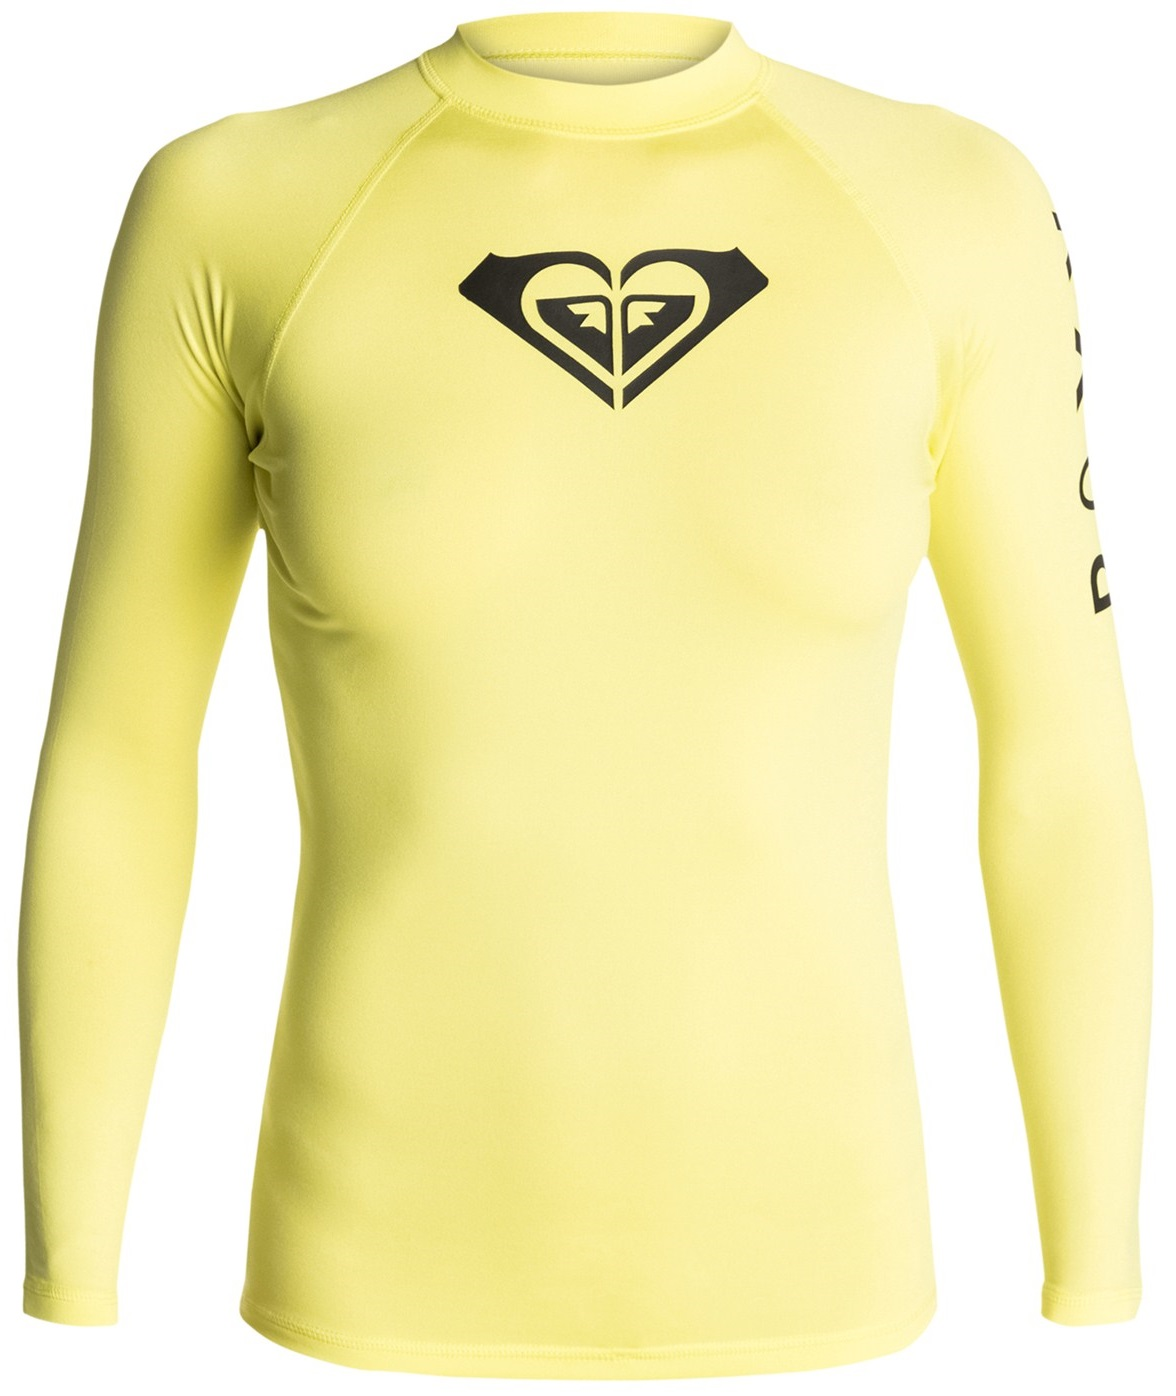 Roxy Whole Hearted Long Sleeve Women's Rashguard - Lemon